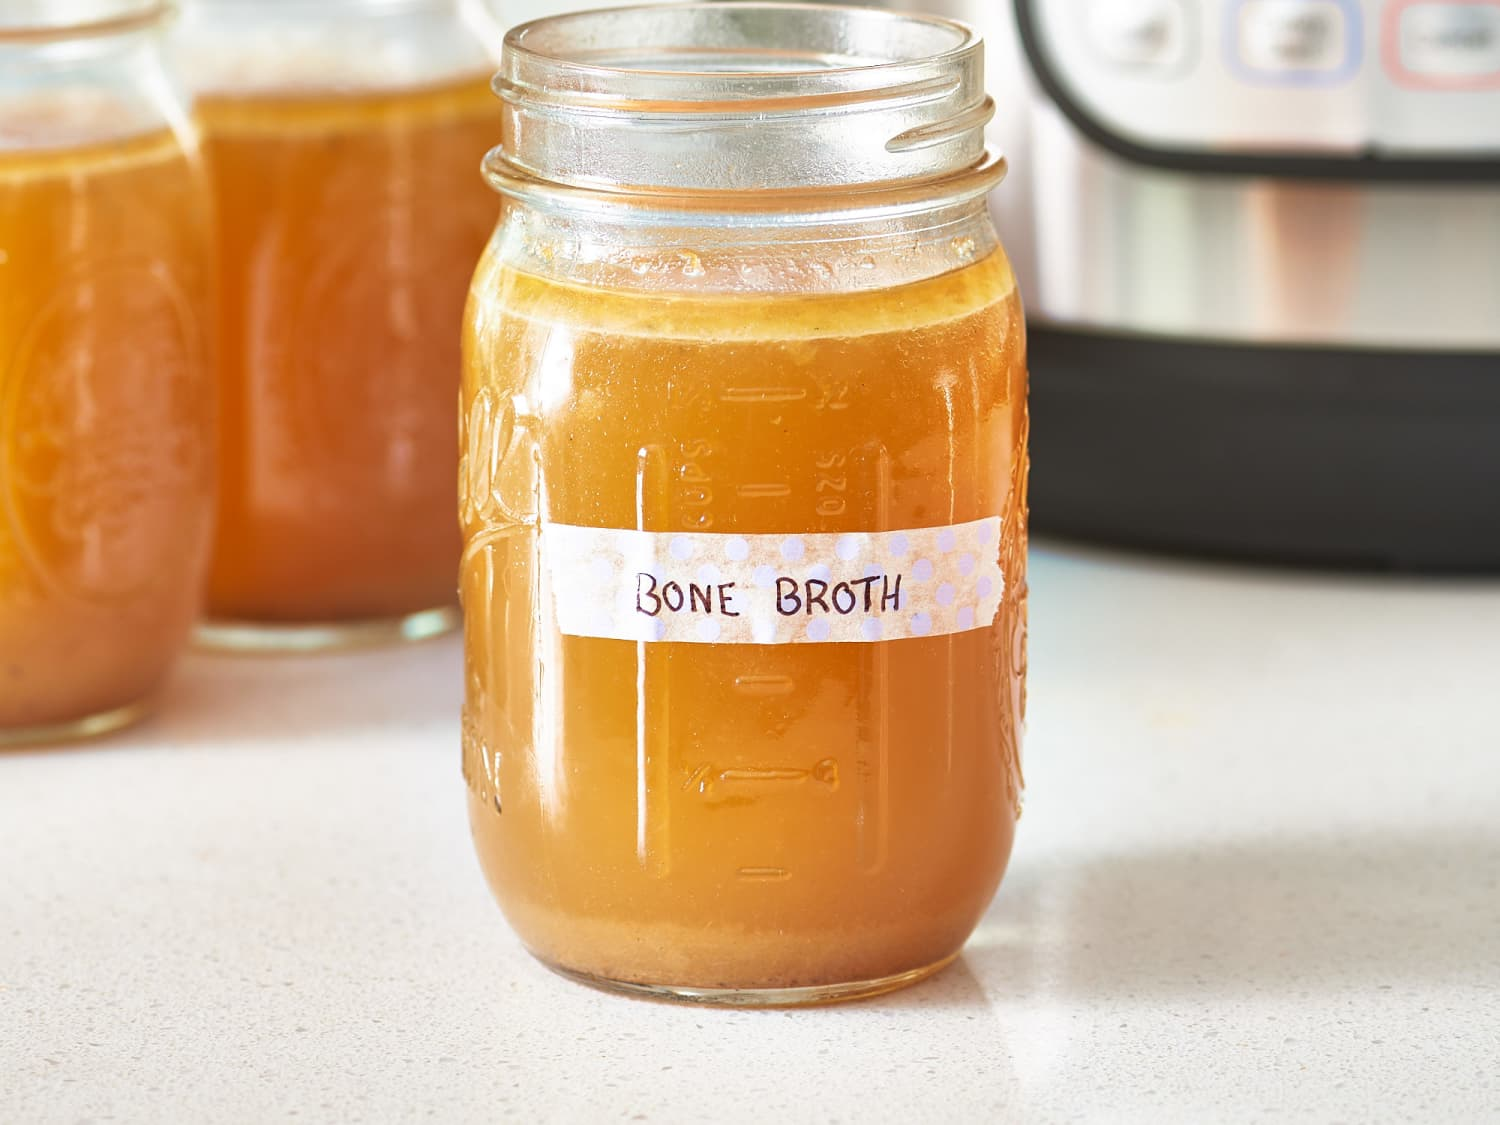 Is bone broth goo for you